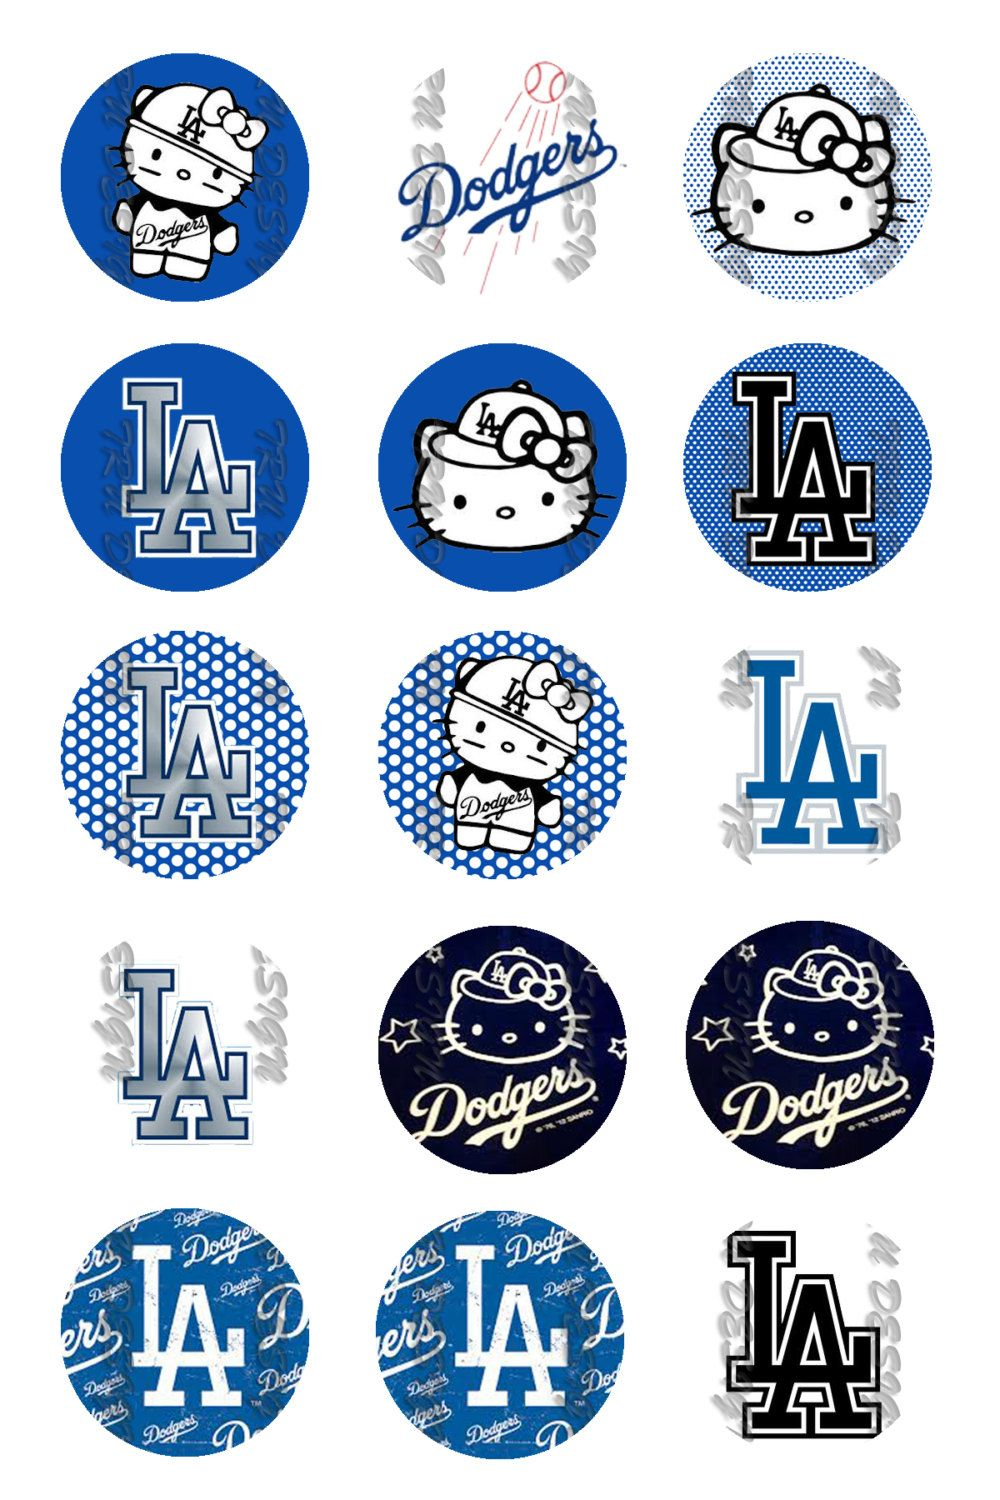 La Dodgers Hello Kitty 1 Round Digital Bottle By Trudesigntorres